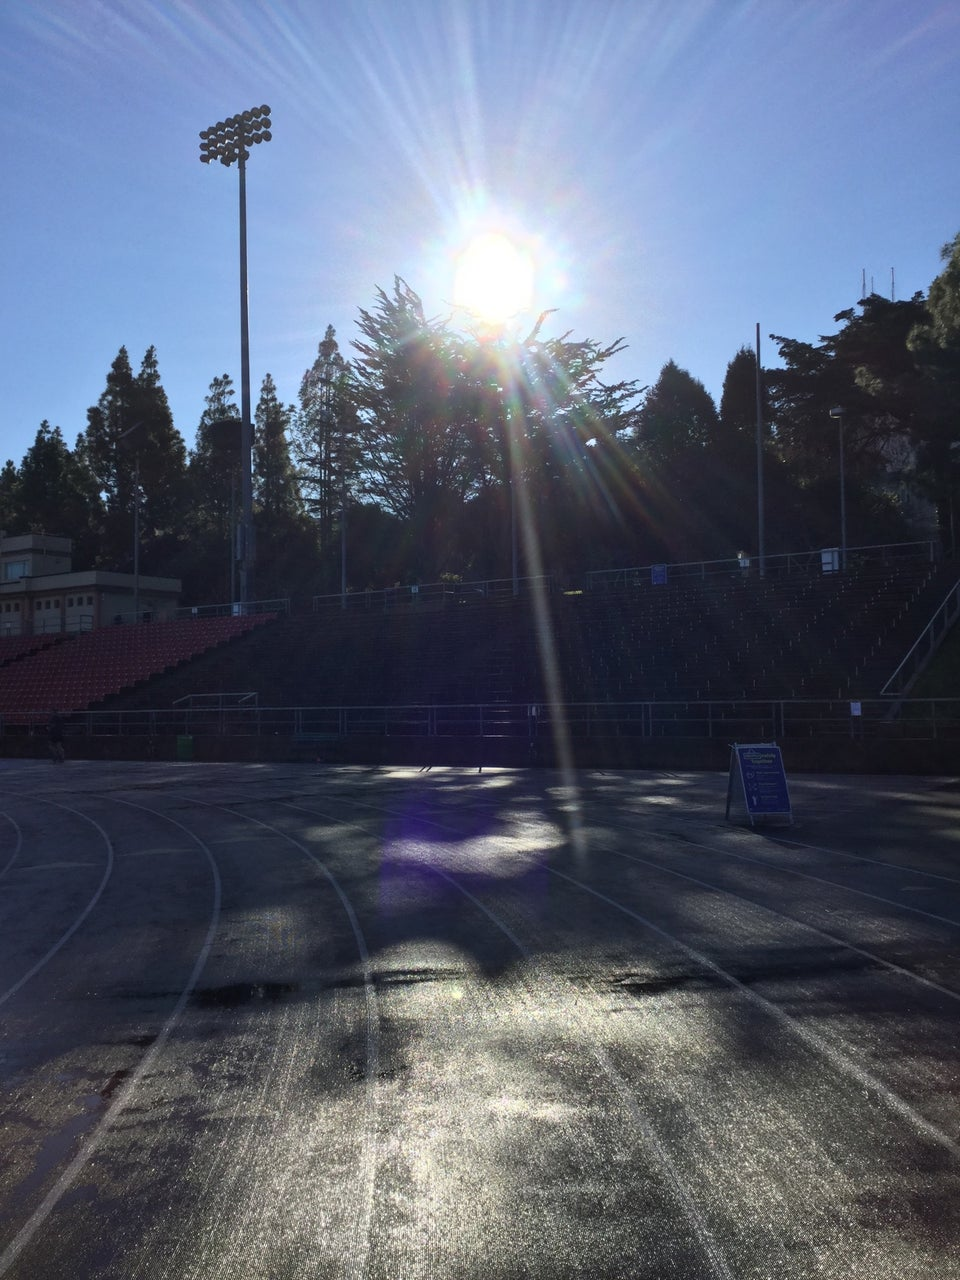 Kezar track rounding the last corner, the sun shining directly overhead lighting up track, a Covid warning placard on the edge of the lanes.